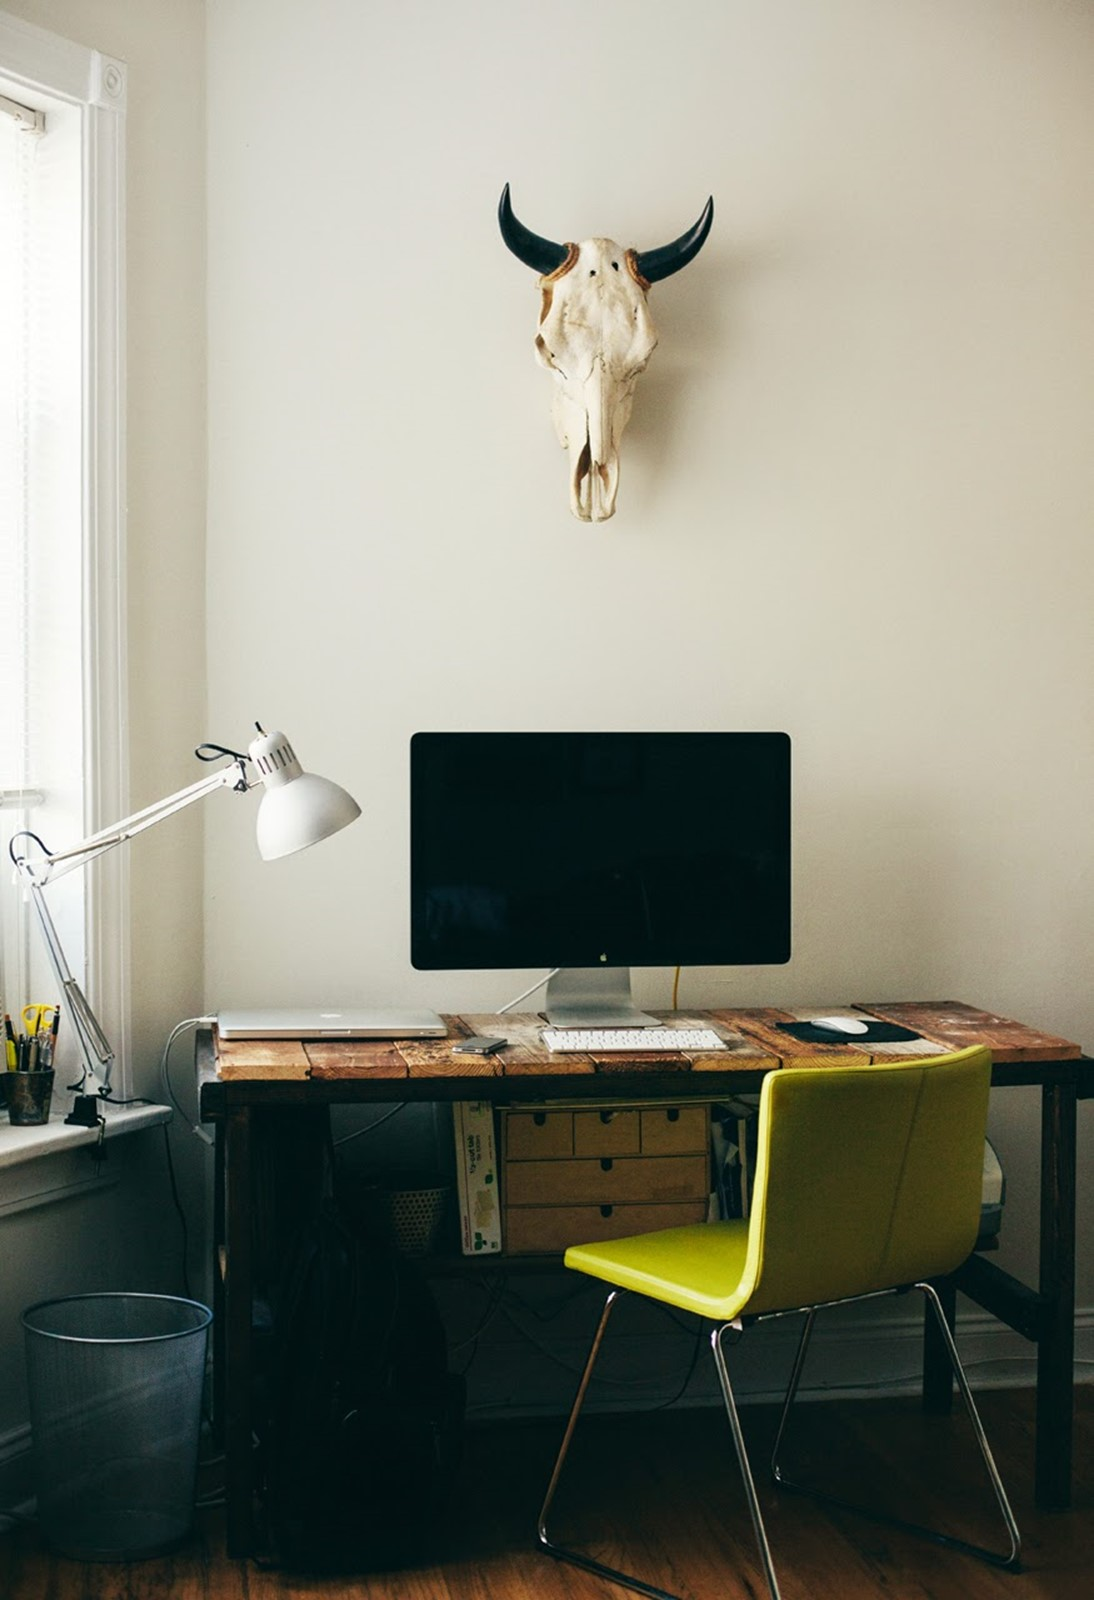 Home office decorating ideas: 23 Ideas for workplace – DIY is FUN